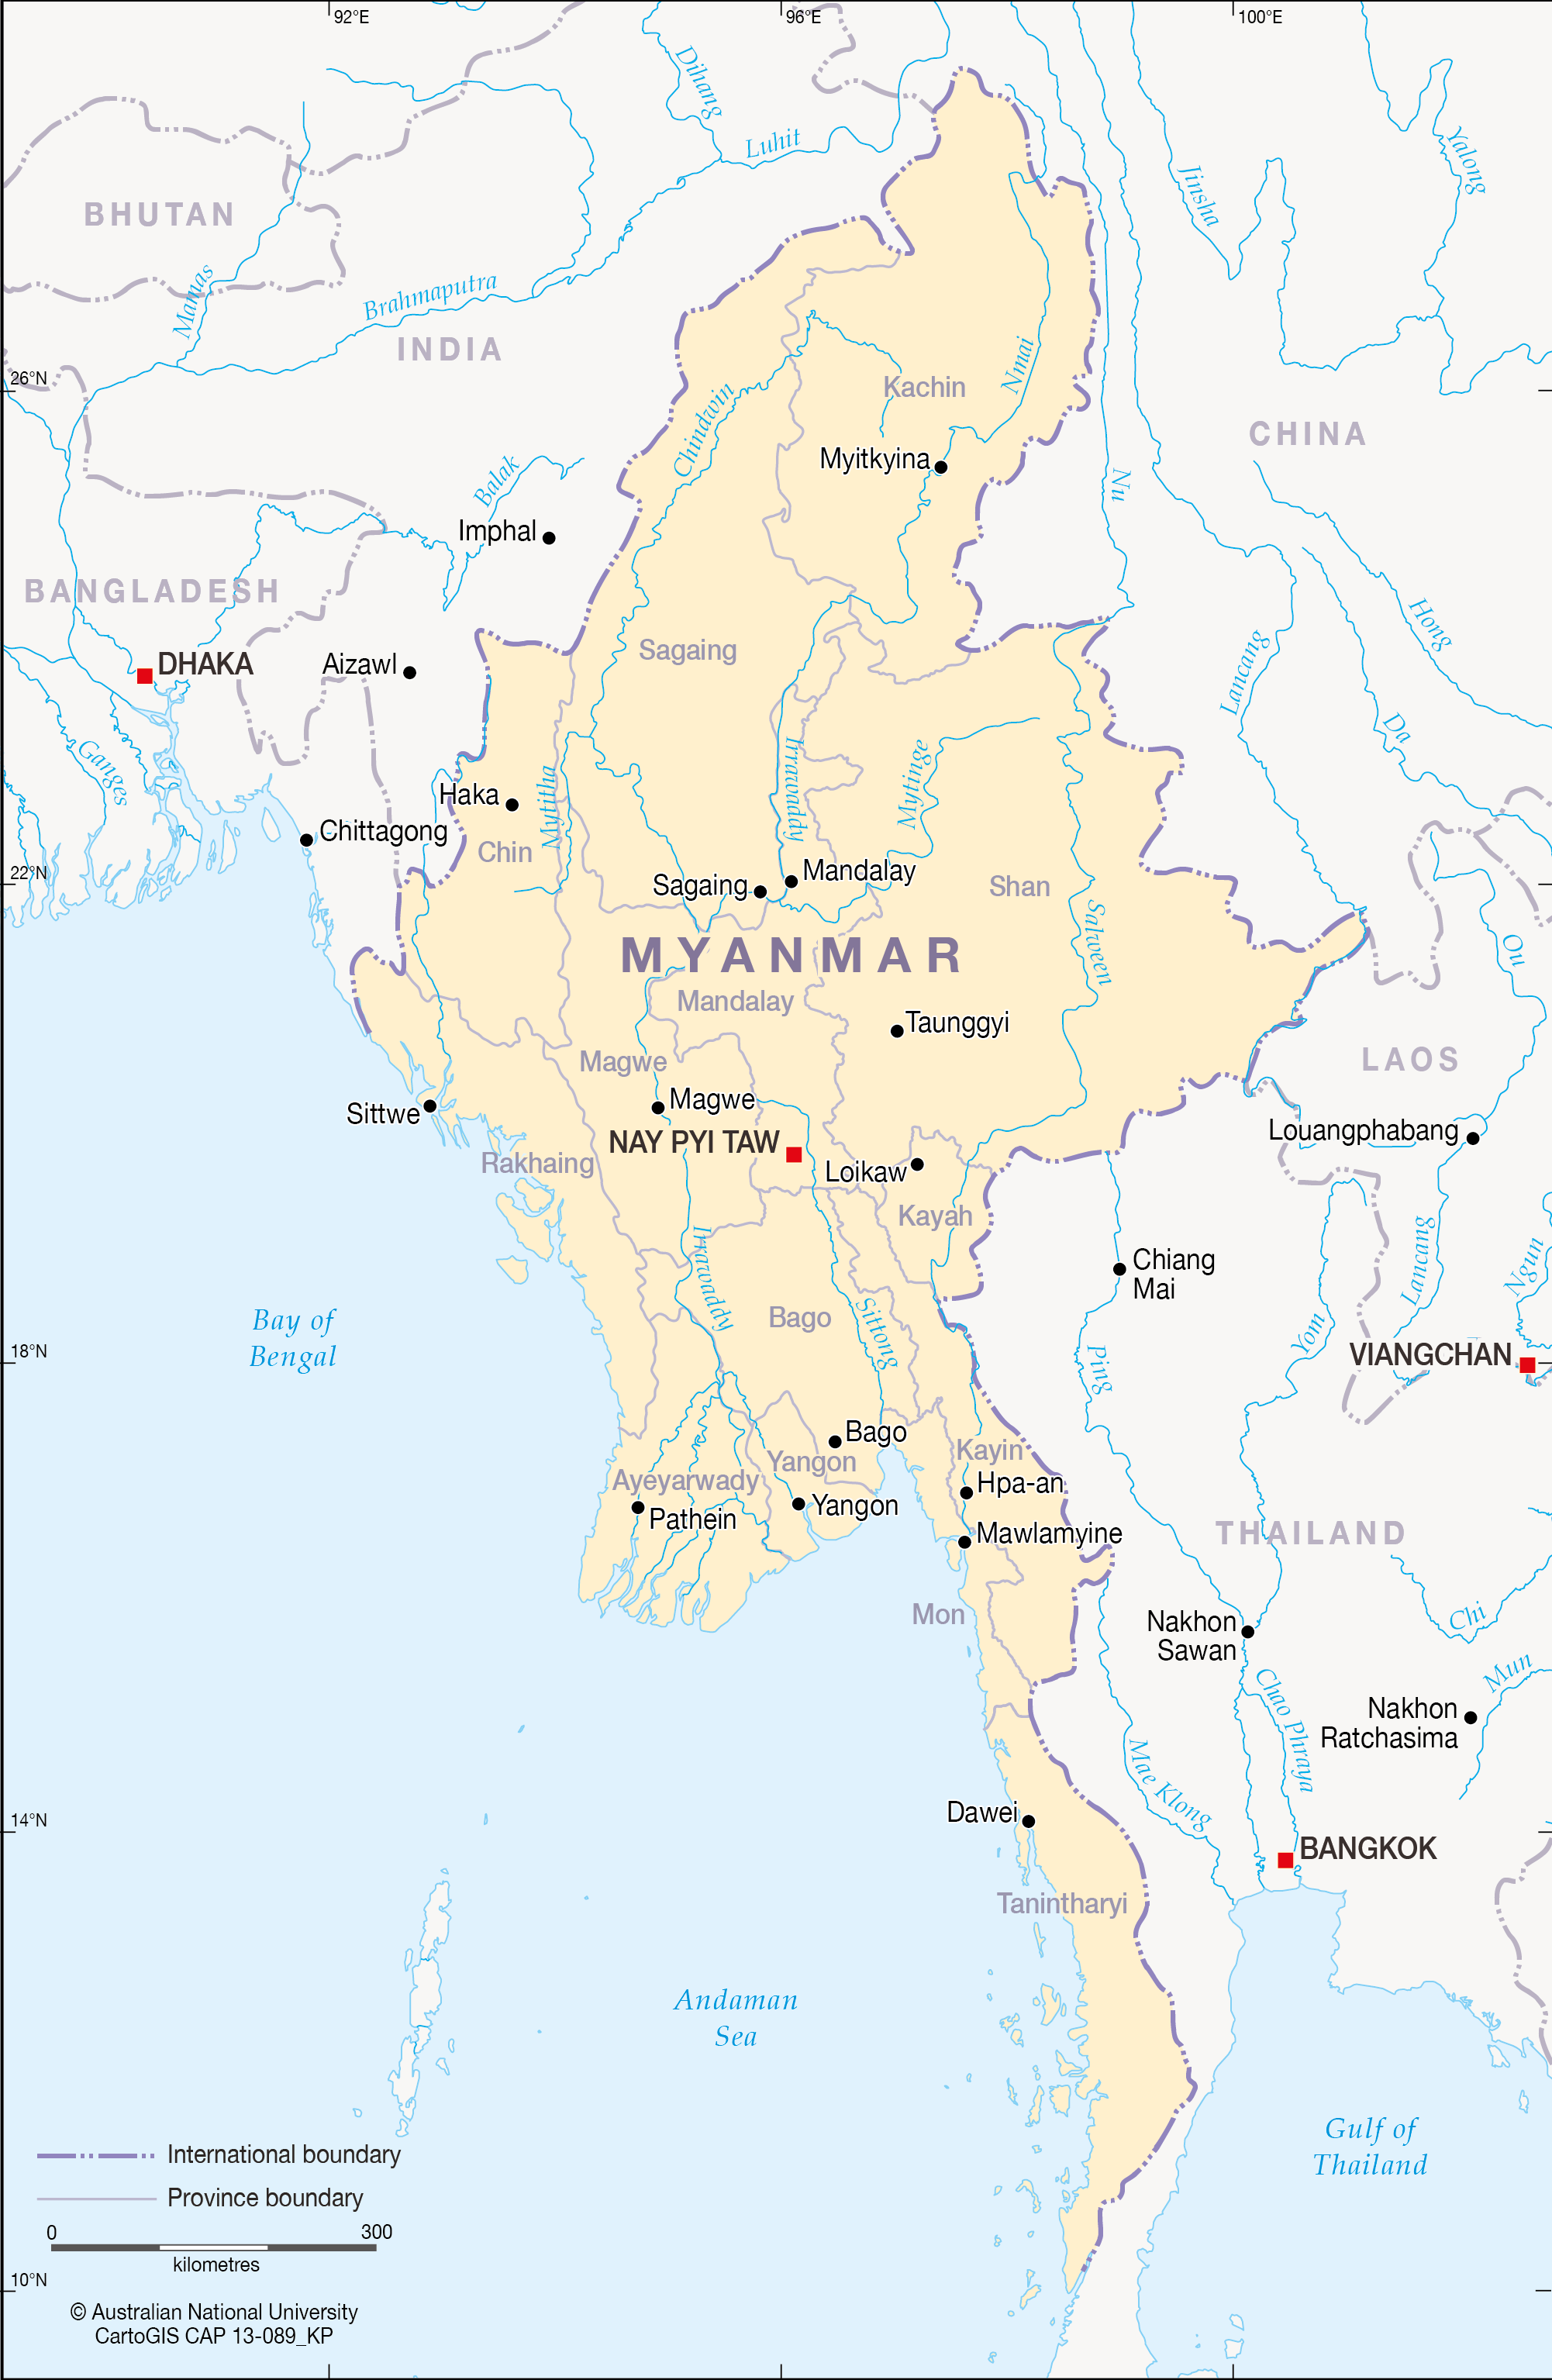 Myanmar Rivers CartoGIS Services Maps Online ANU - Burma map download